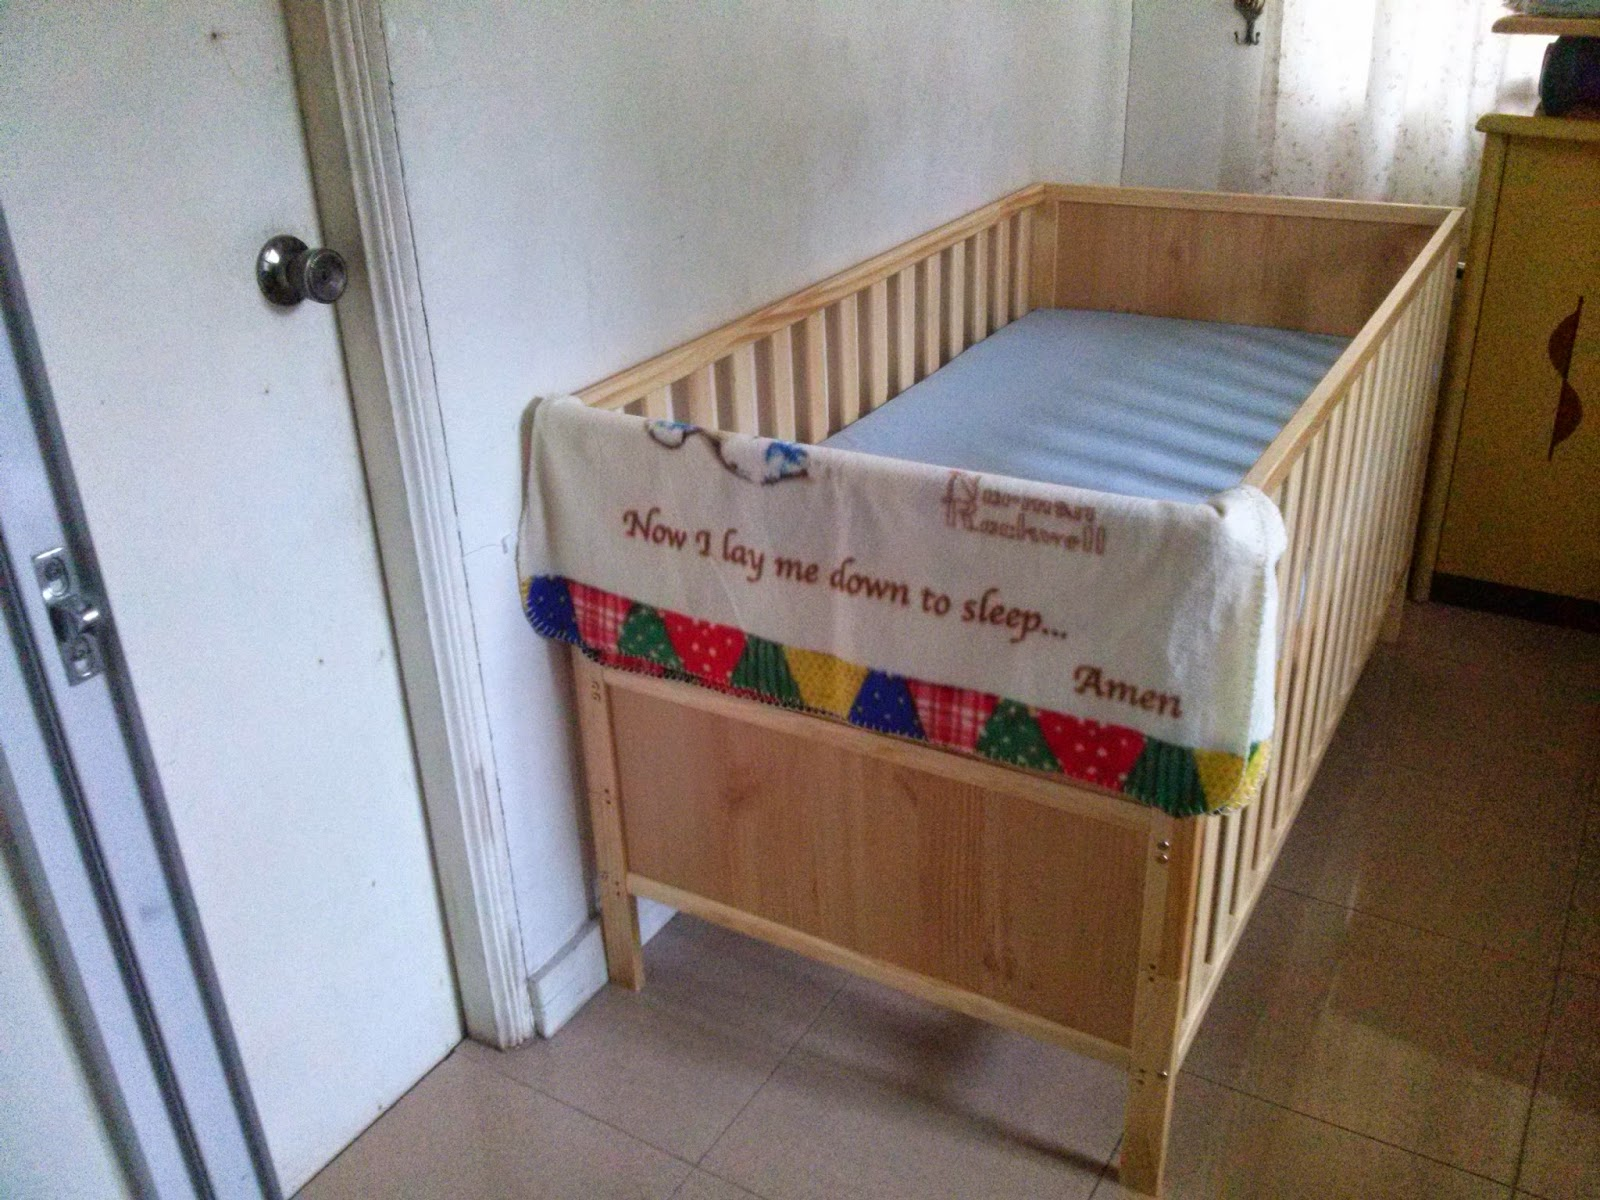 Gocrib adventure crib for sale - Baby Wooden Crib For Sale In Quezon City It Took Around 20 Minutes For Husband